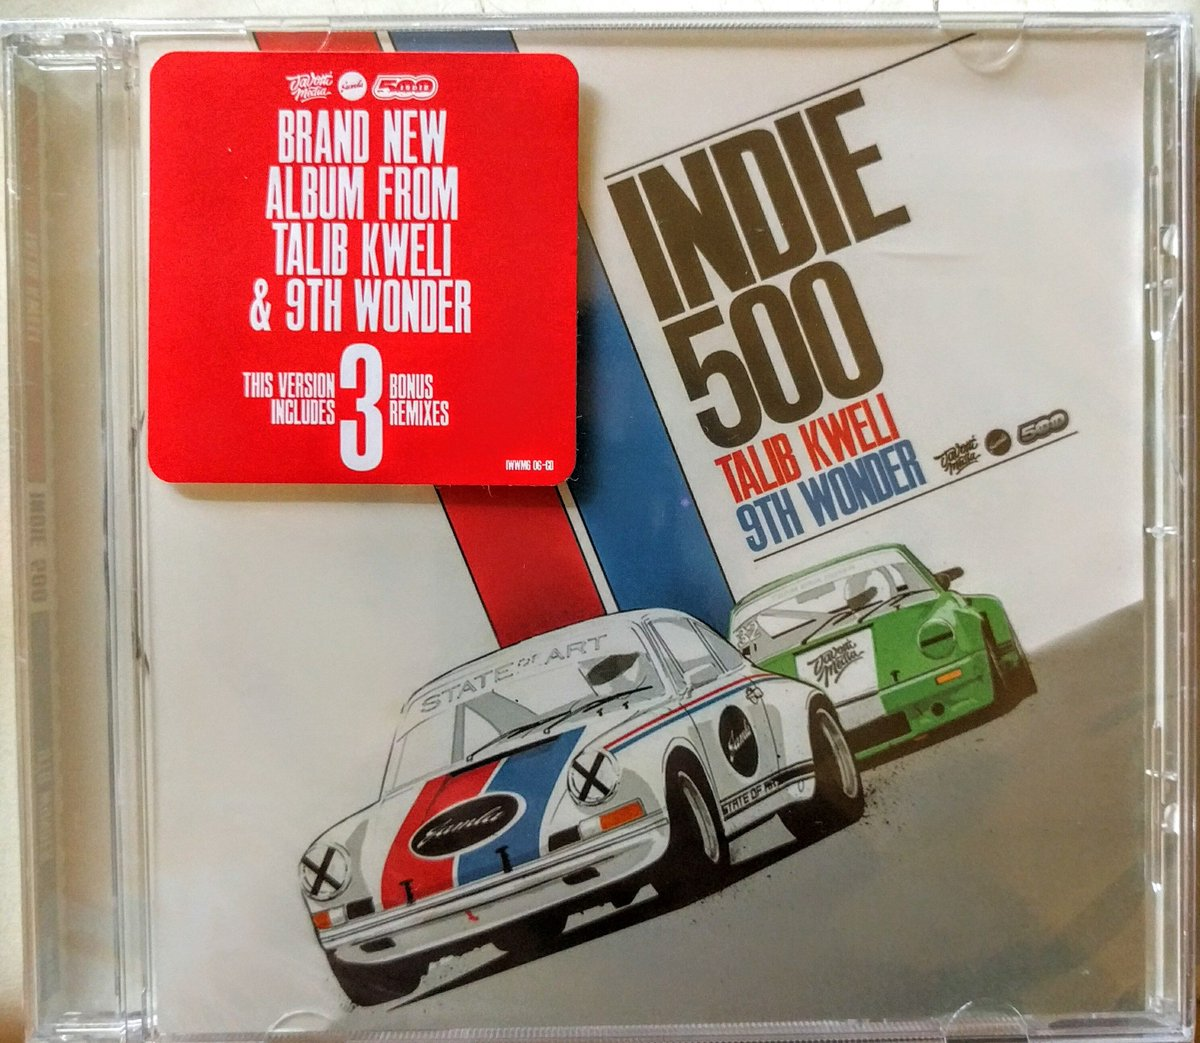 Retweet for a chance to win the #INDIE500 CD in the picture!  Contest ends MIDNIGHT, Monday Nov. 9th, so RT TODAY! https://t.co/hJxBwm3mbe